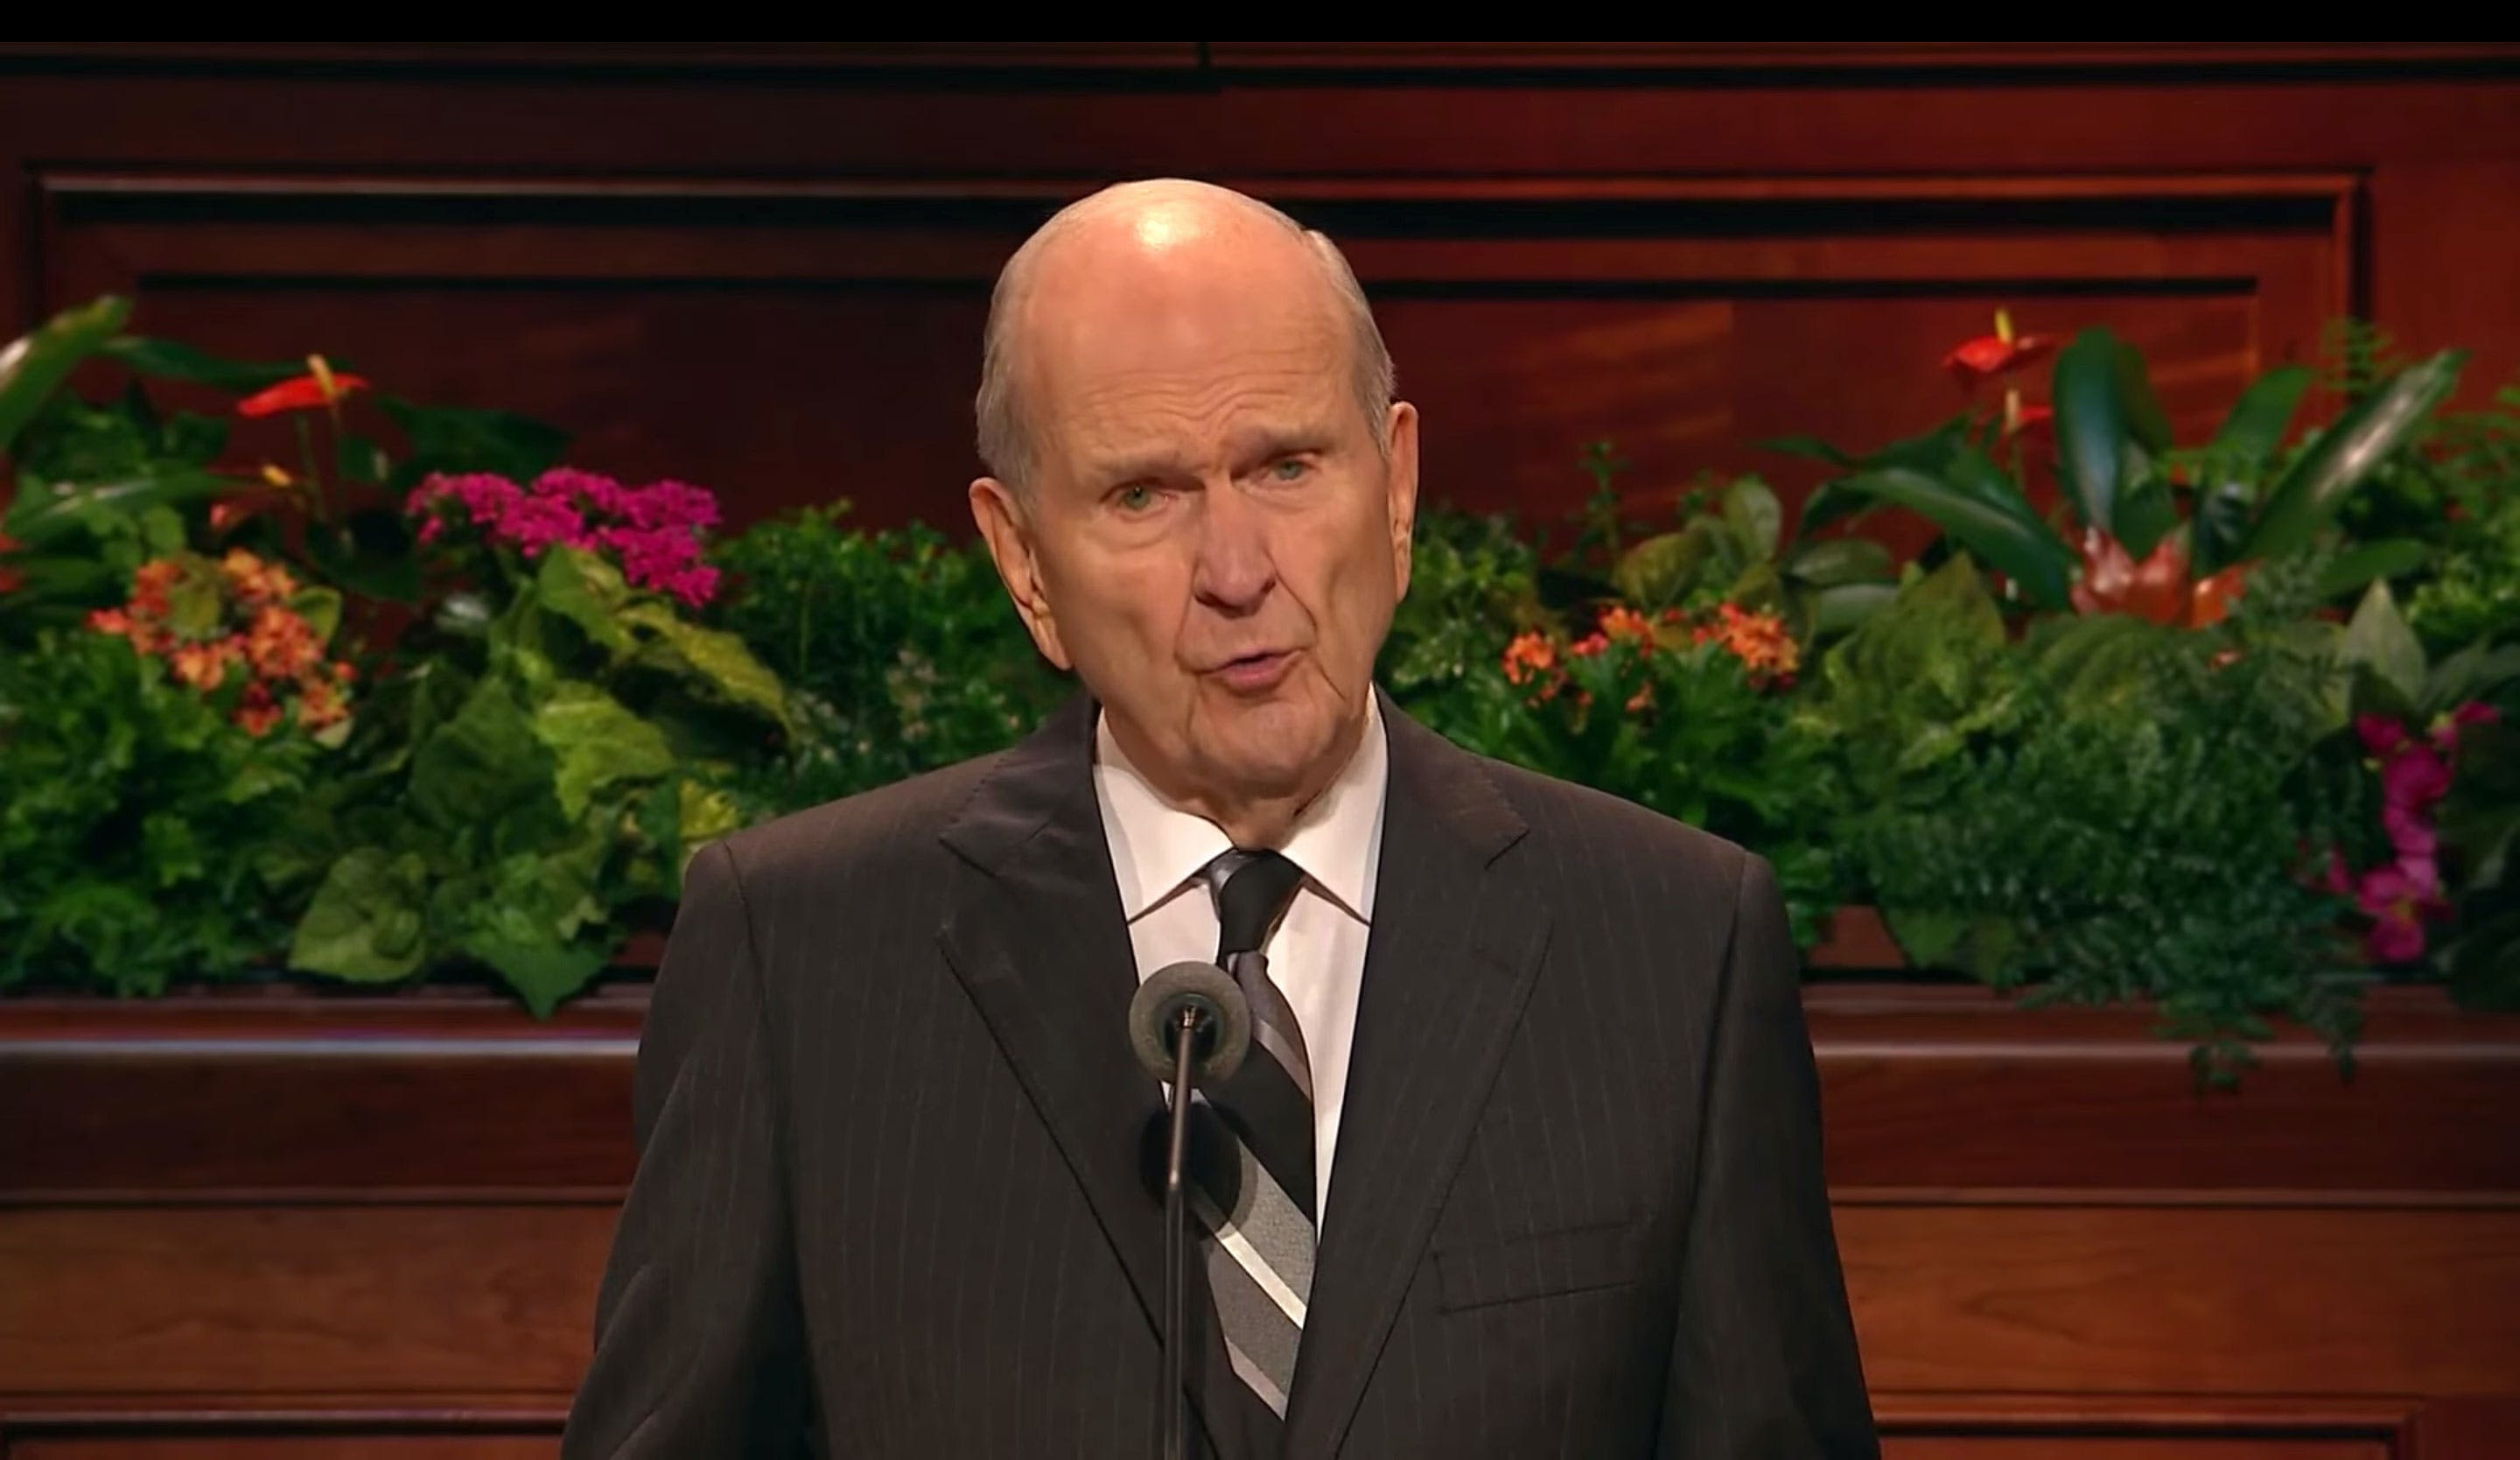 Mormon Church Backs Plan to Legalize Cannabis in Utah This Year. Here, President Russell M. Nelson appears opening the Saturday morning session of the 188th Semiannual General Conference of the Church at the Conference Center in Salt Lake City on October 6, 2018.